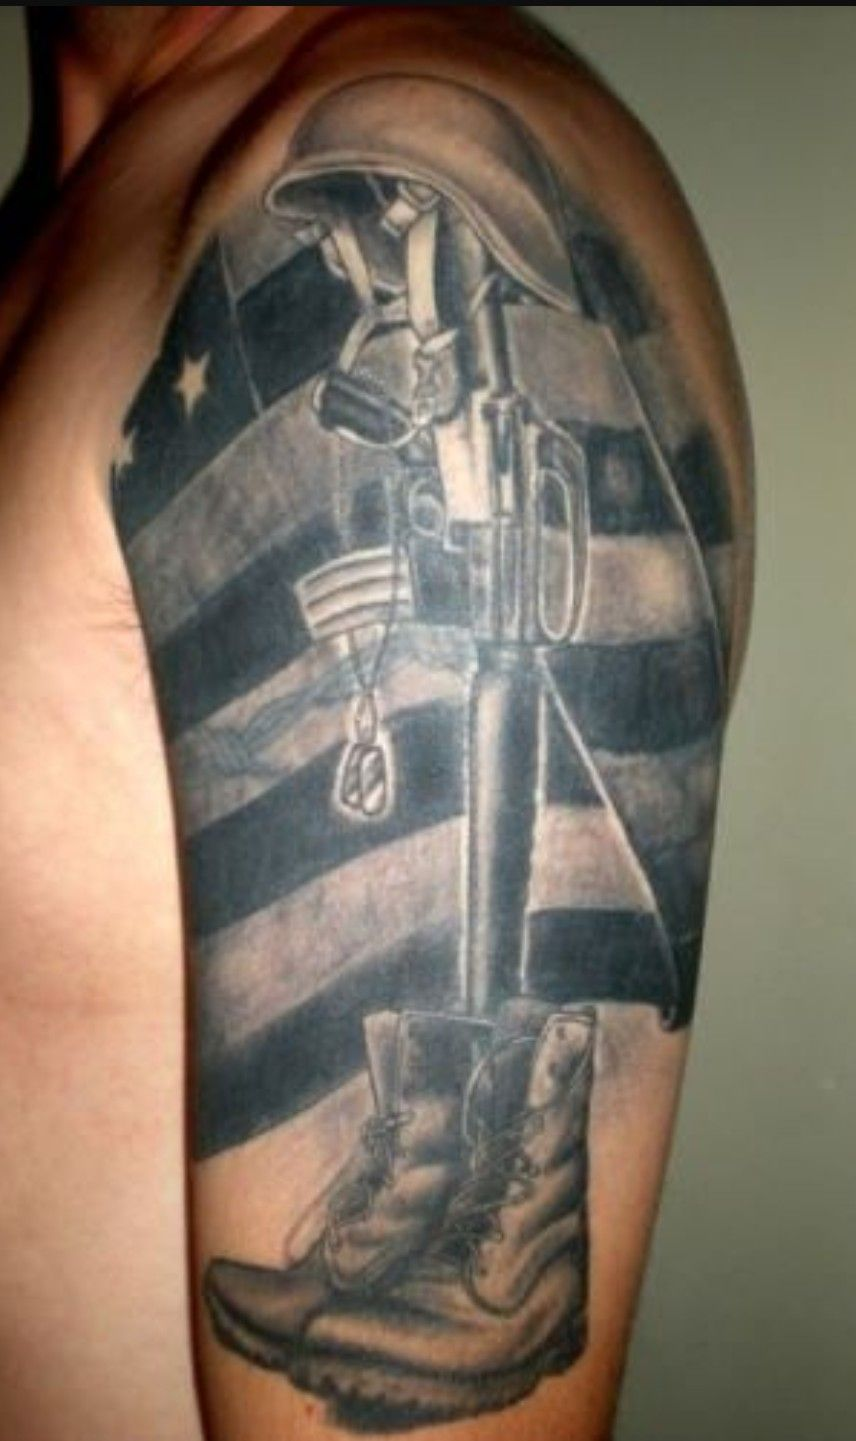 38+ Awesome Military fallen soldier tattoos image ideas